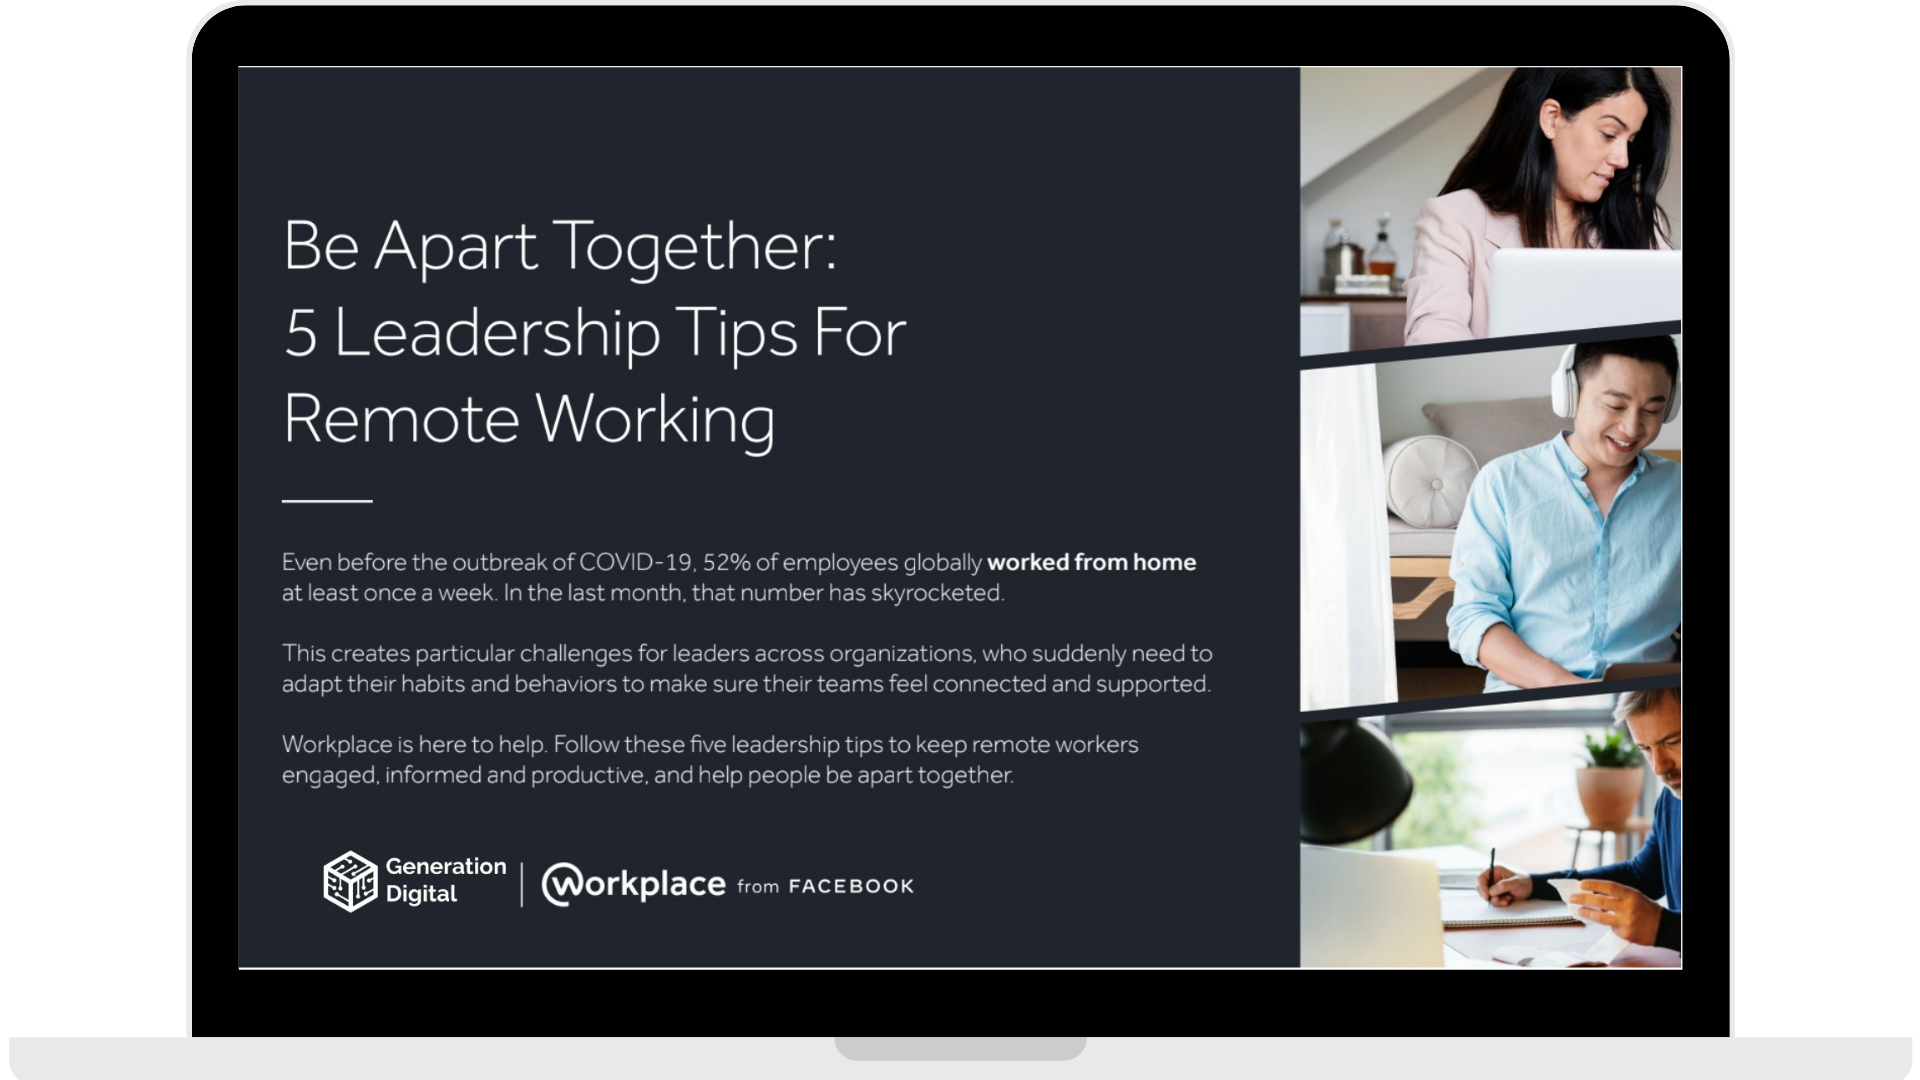 WPF - Be Apart Together_ 5 Leadership Tips for Remote Working - Laptop - Transparent